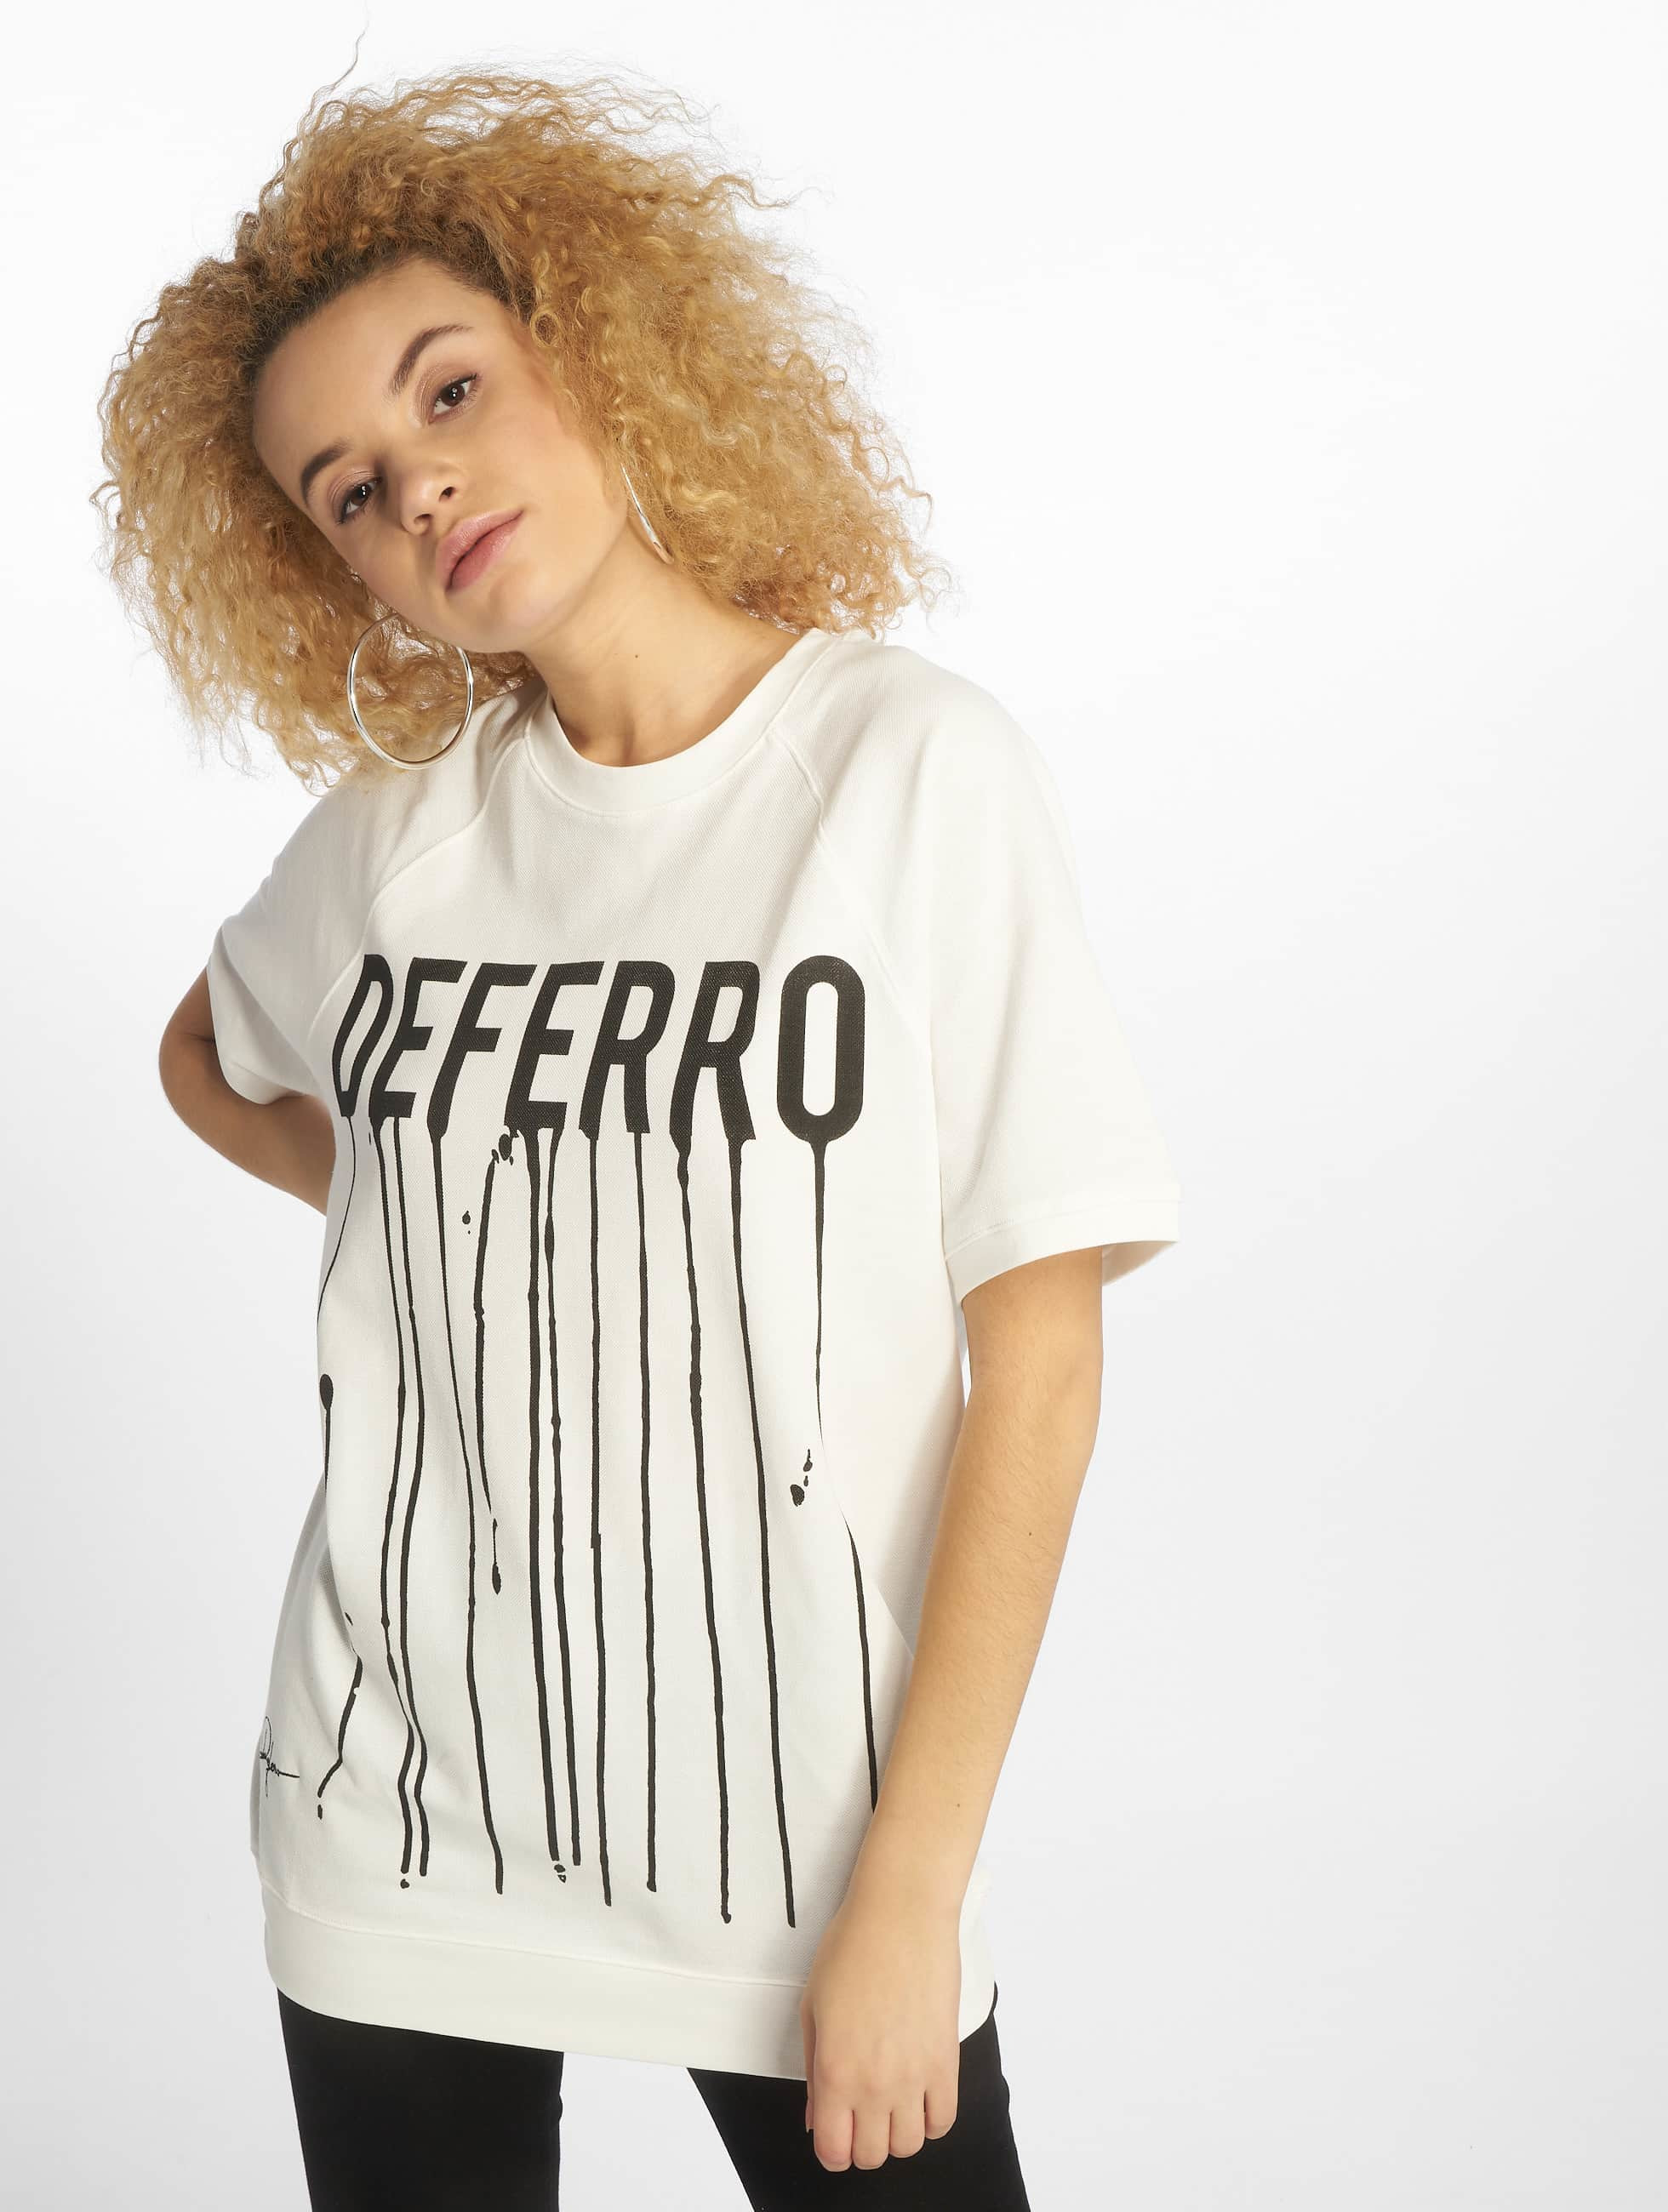 De Ferro / T-Shirt Draft in white L